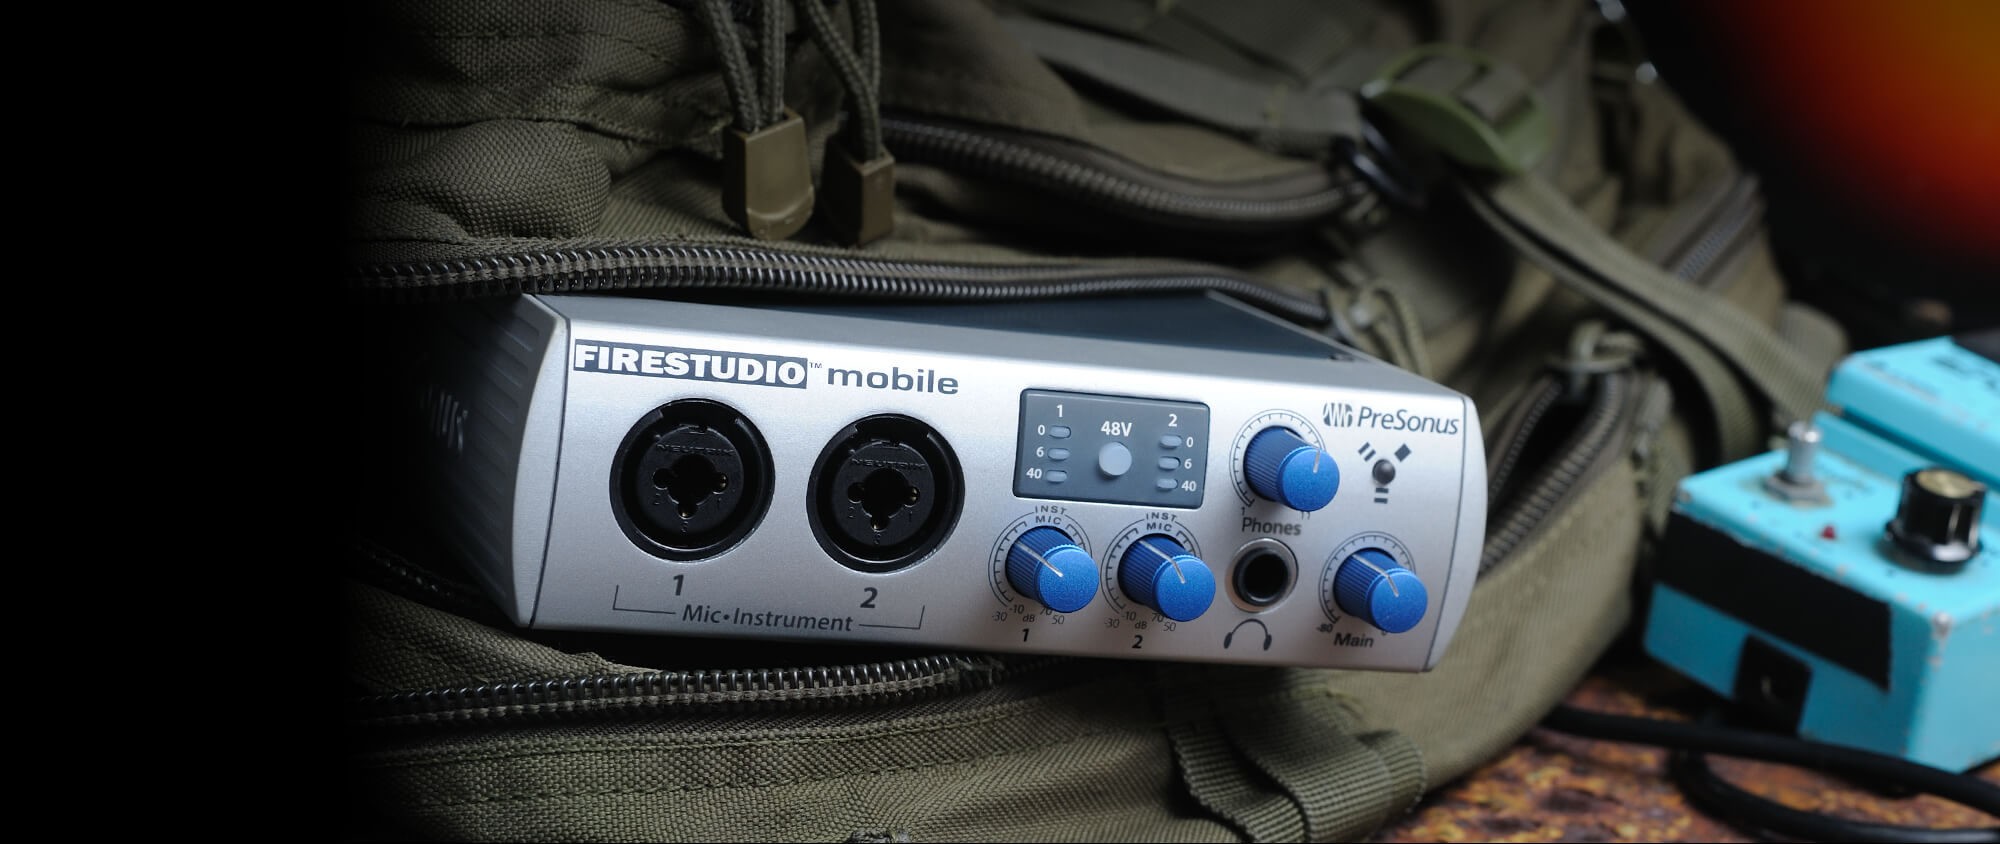 Firestudio Mobile Presonus Class G H Amplifiers Do They Deliver On Their Promise Of High Audio